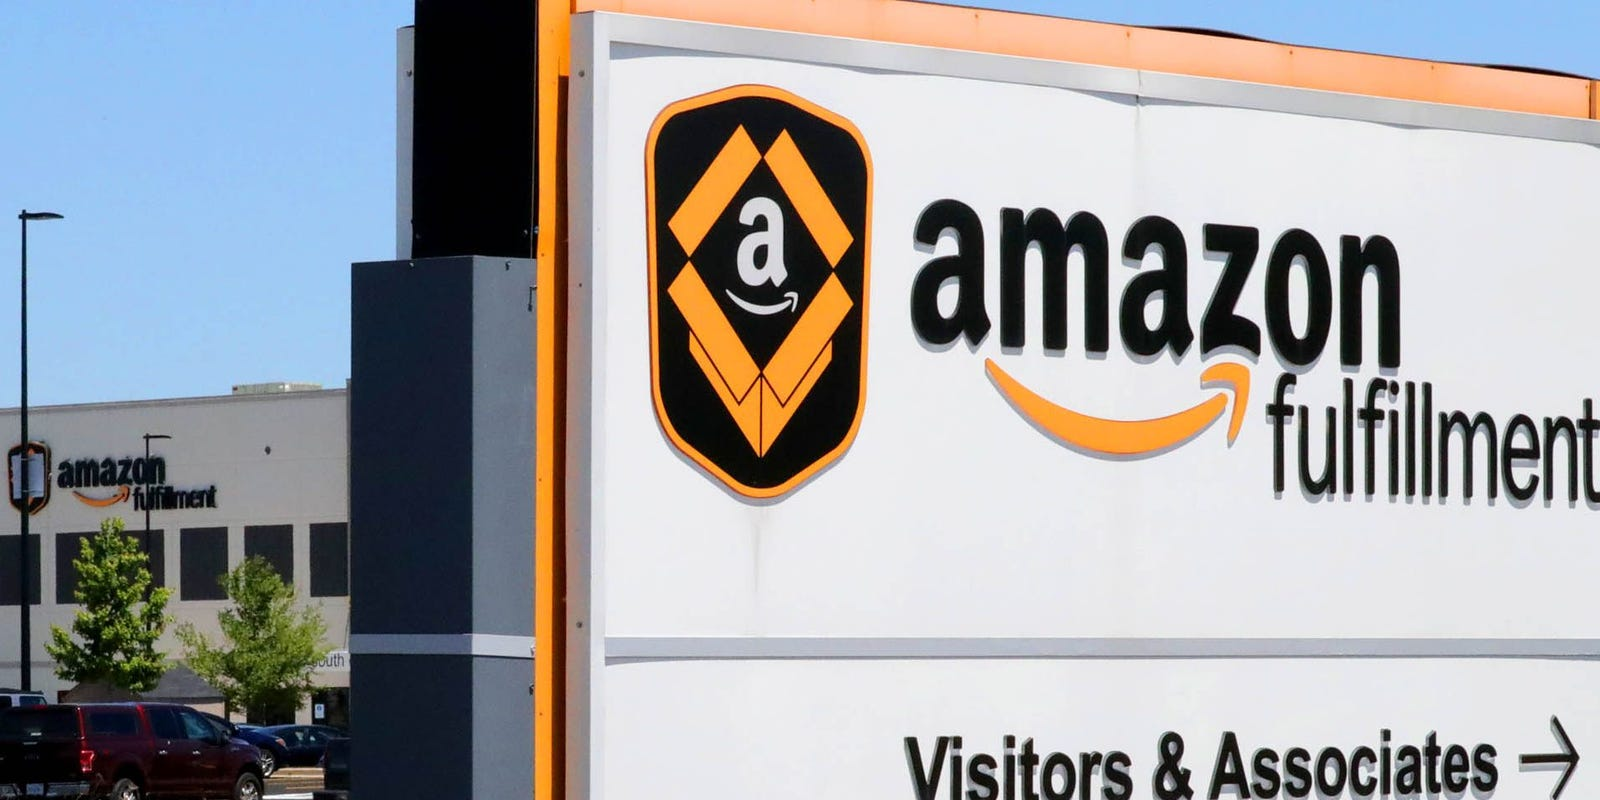 Officials ask to test all Amazon workers for COVID-19 in Wis. location